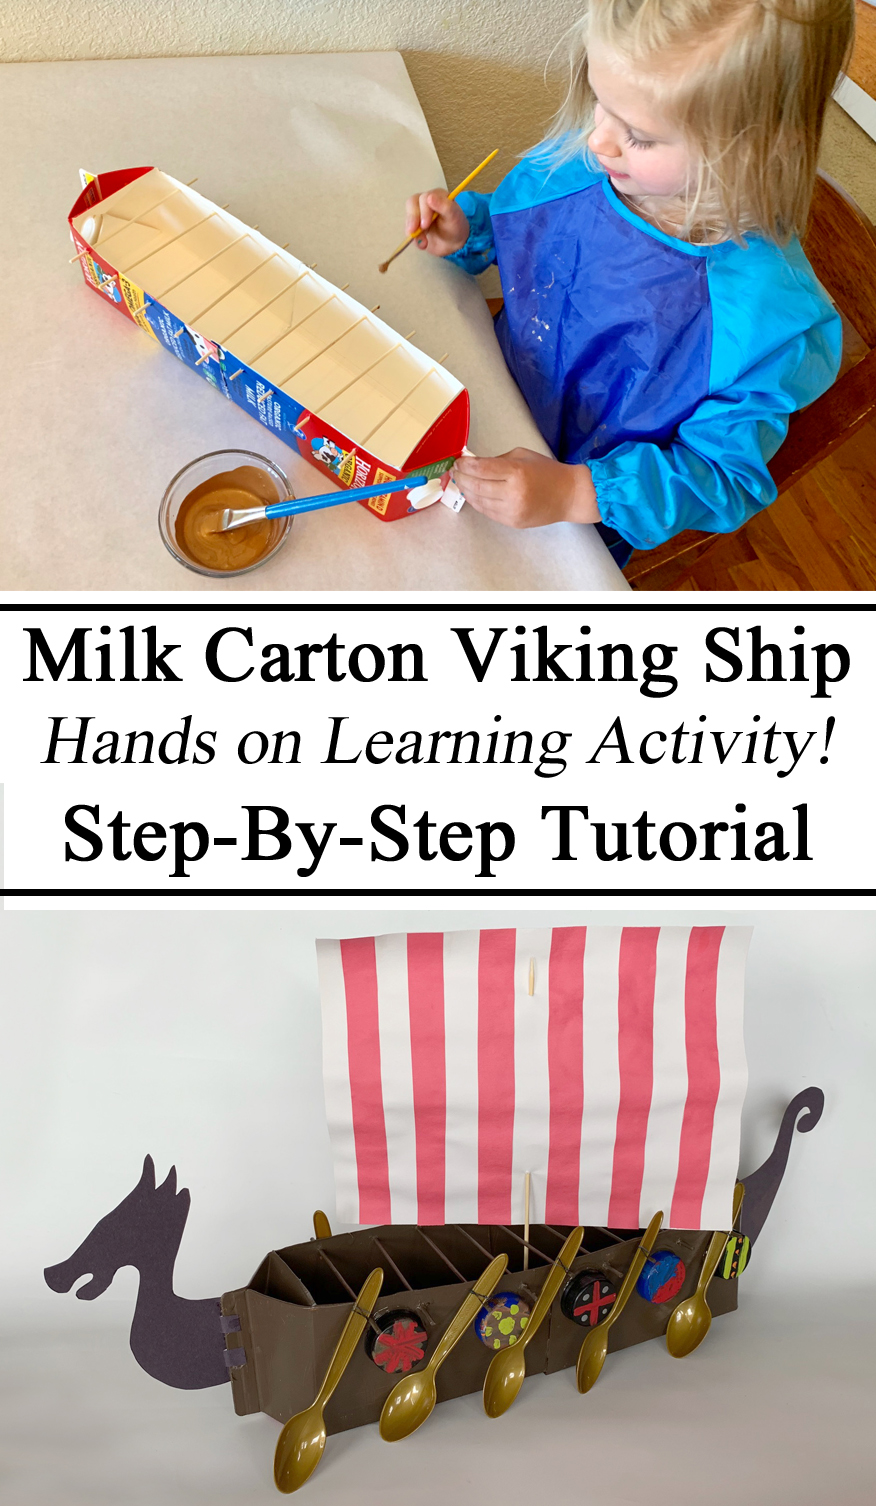 Viking Ship, Long Boat, Longboat, Milk Carton, Junk Modeling, Upcycling, Hands on Learning, Crafts for Kids, Homeschooling, Homeschool, Educational, Learning, Play based, Montessori, Waldorf, Models, Miniatures, Replicas, early Childhood Education, Ideas of Parents, Inspired, Preschool, PreK, Kindergarten,